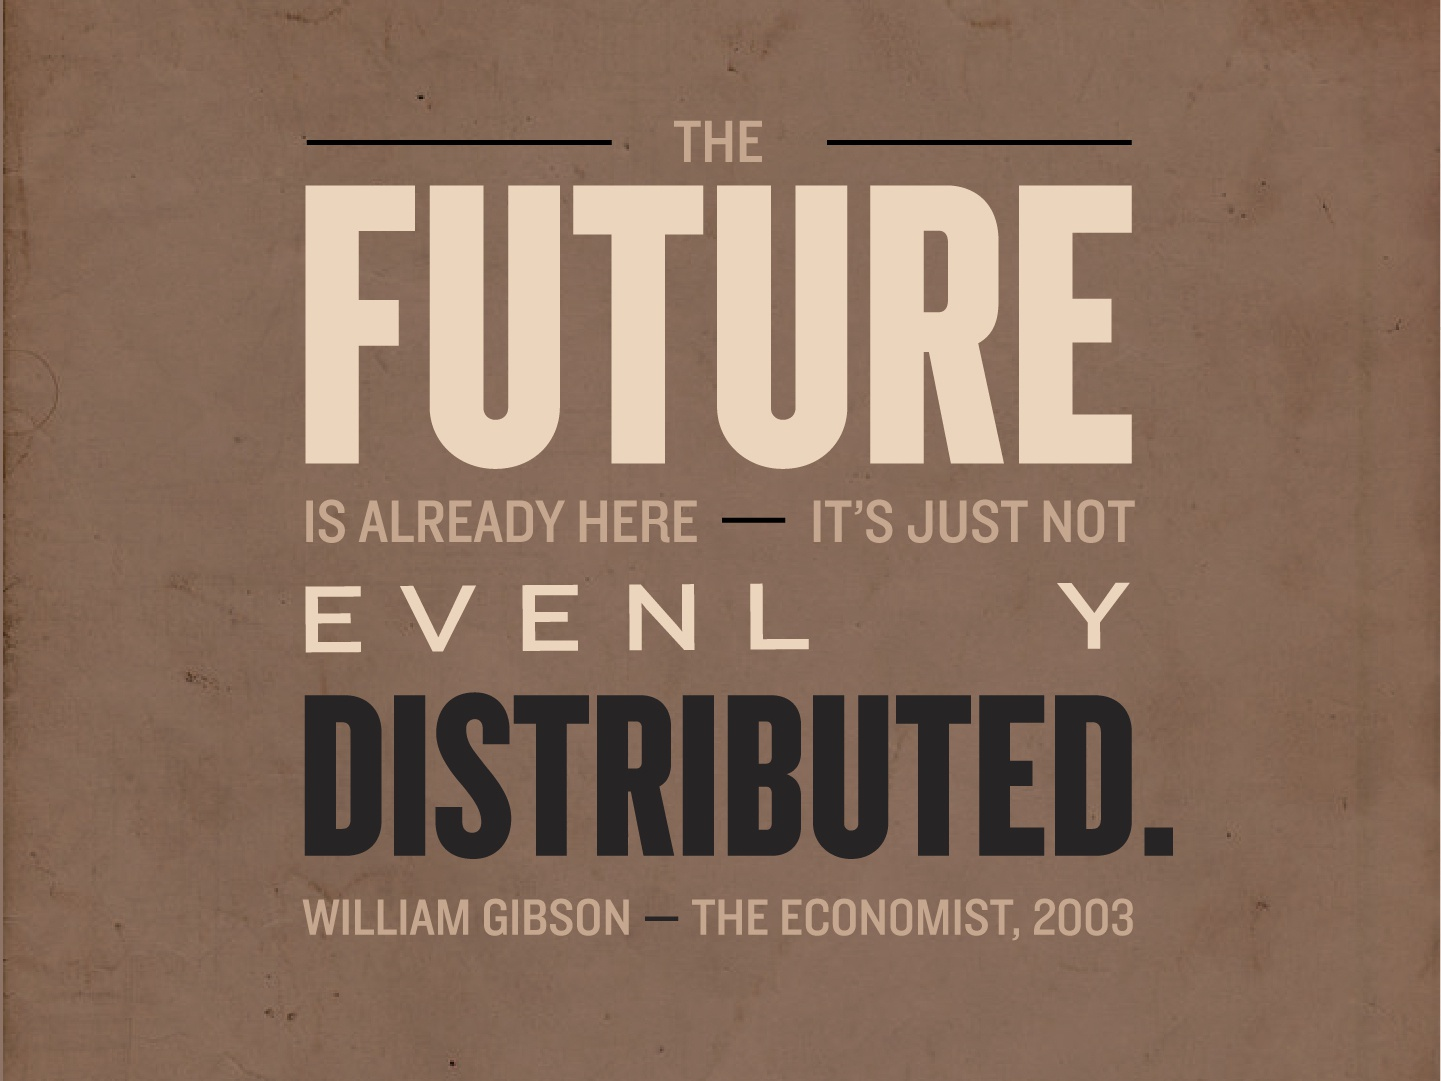 The Future is already here cyberpunk quotes quote typography